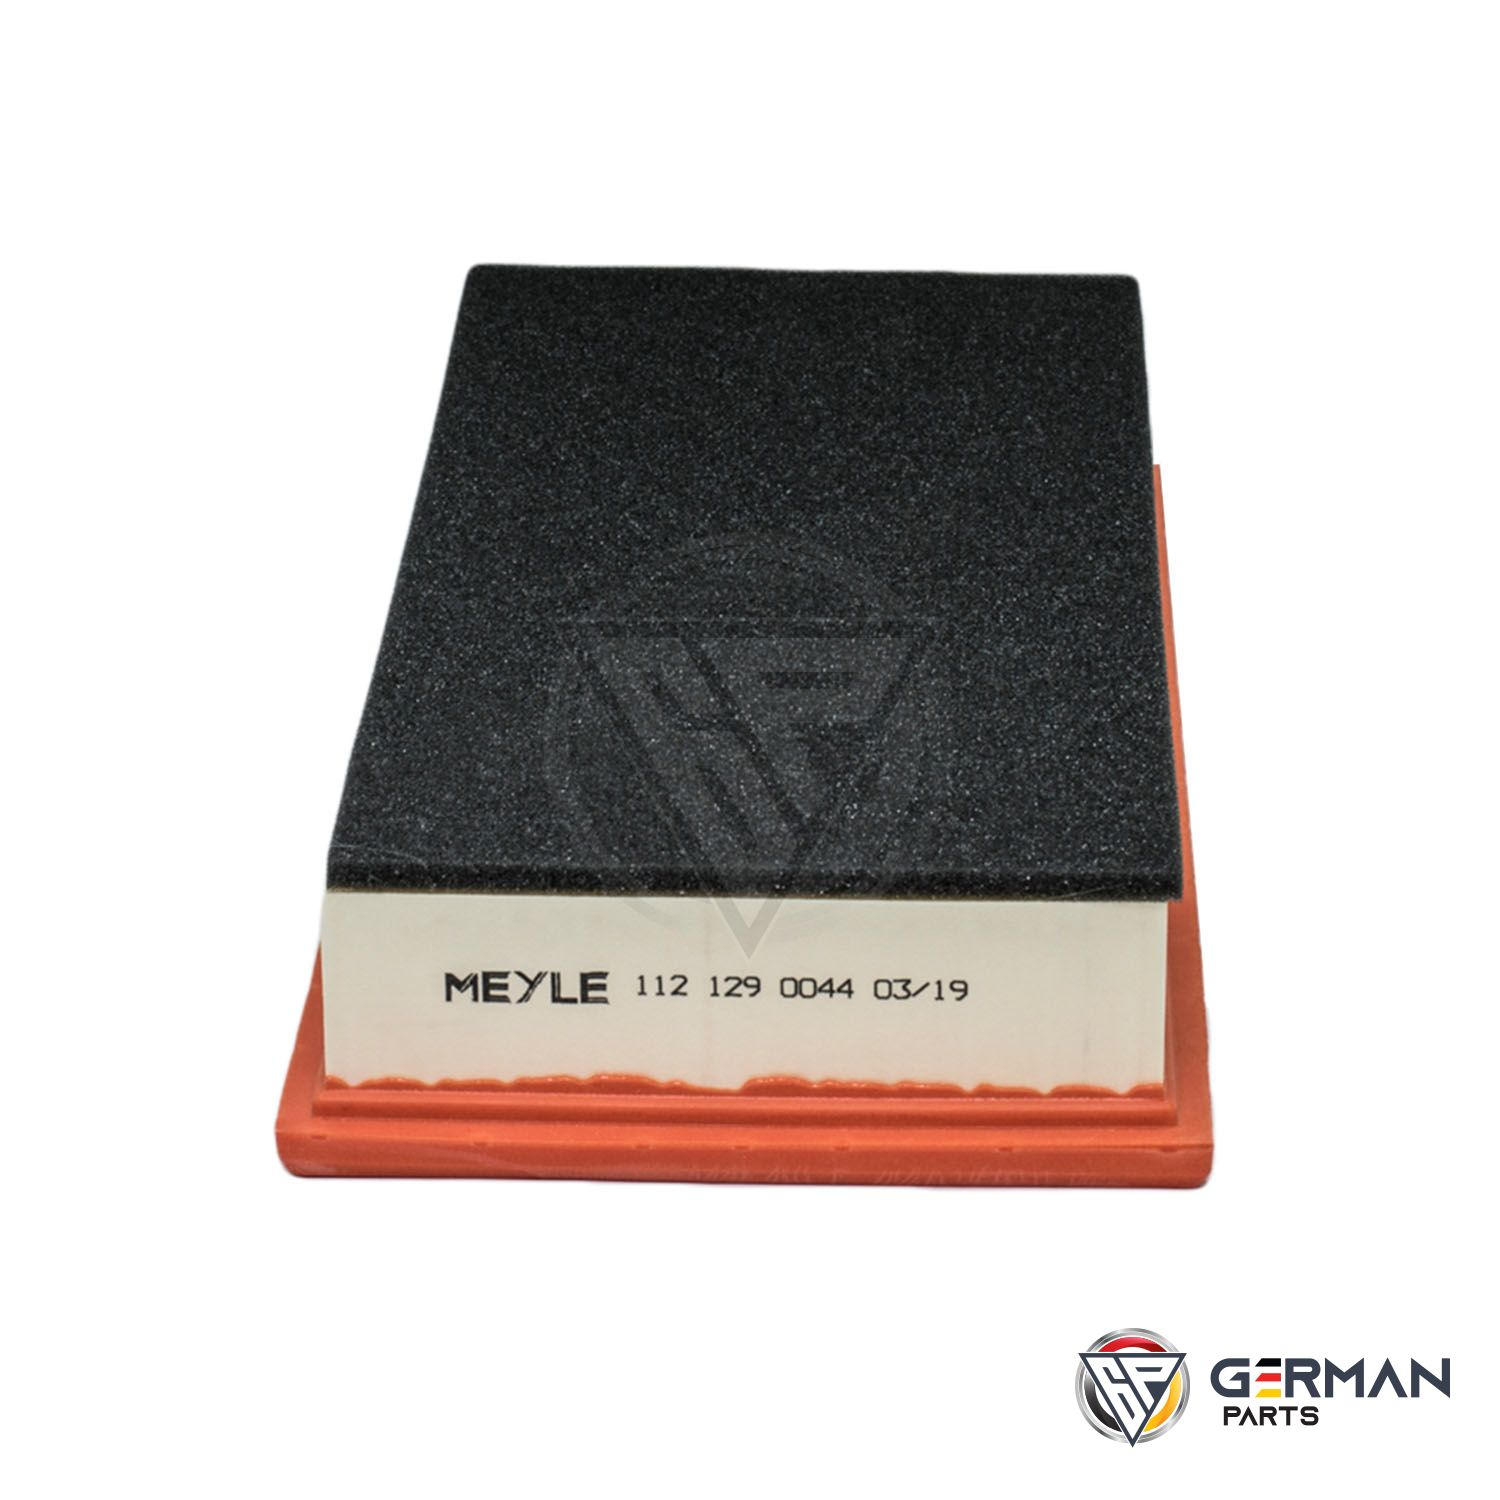 Buy Meyle Air Filter 7L0129620A - German Parts